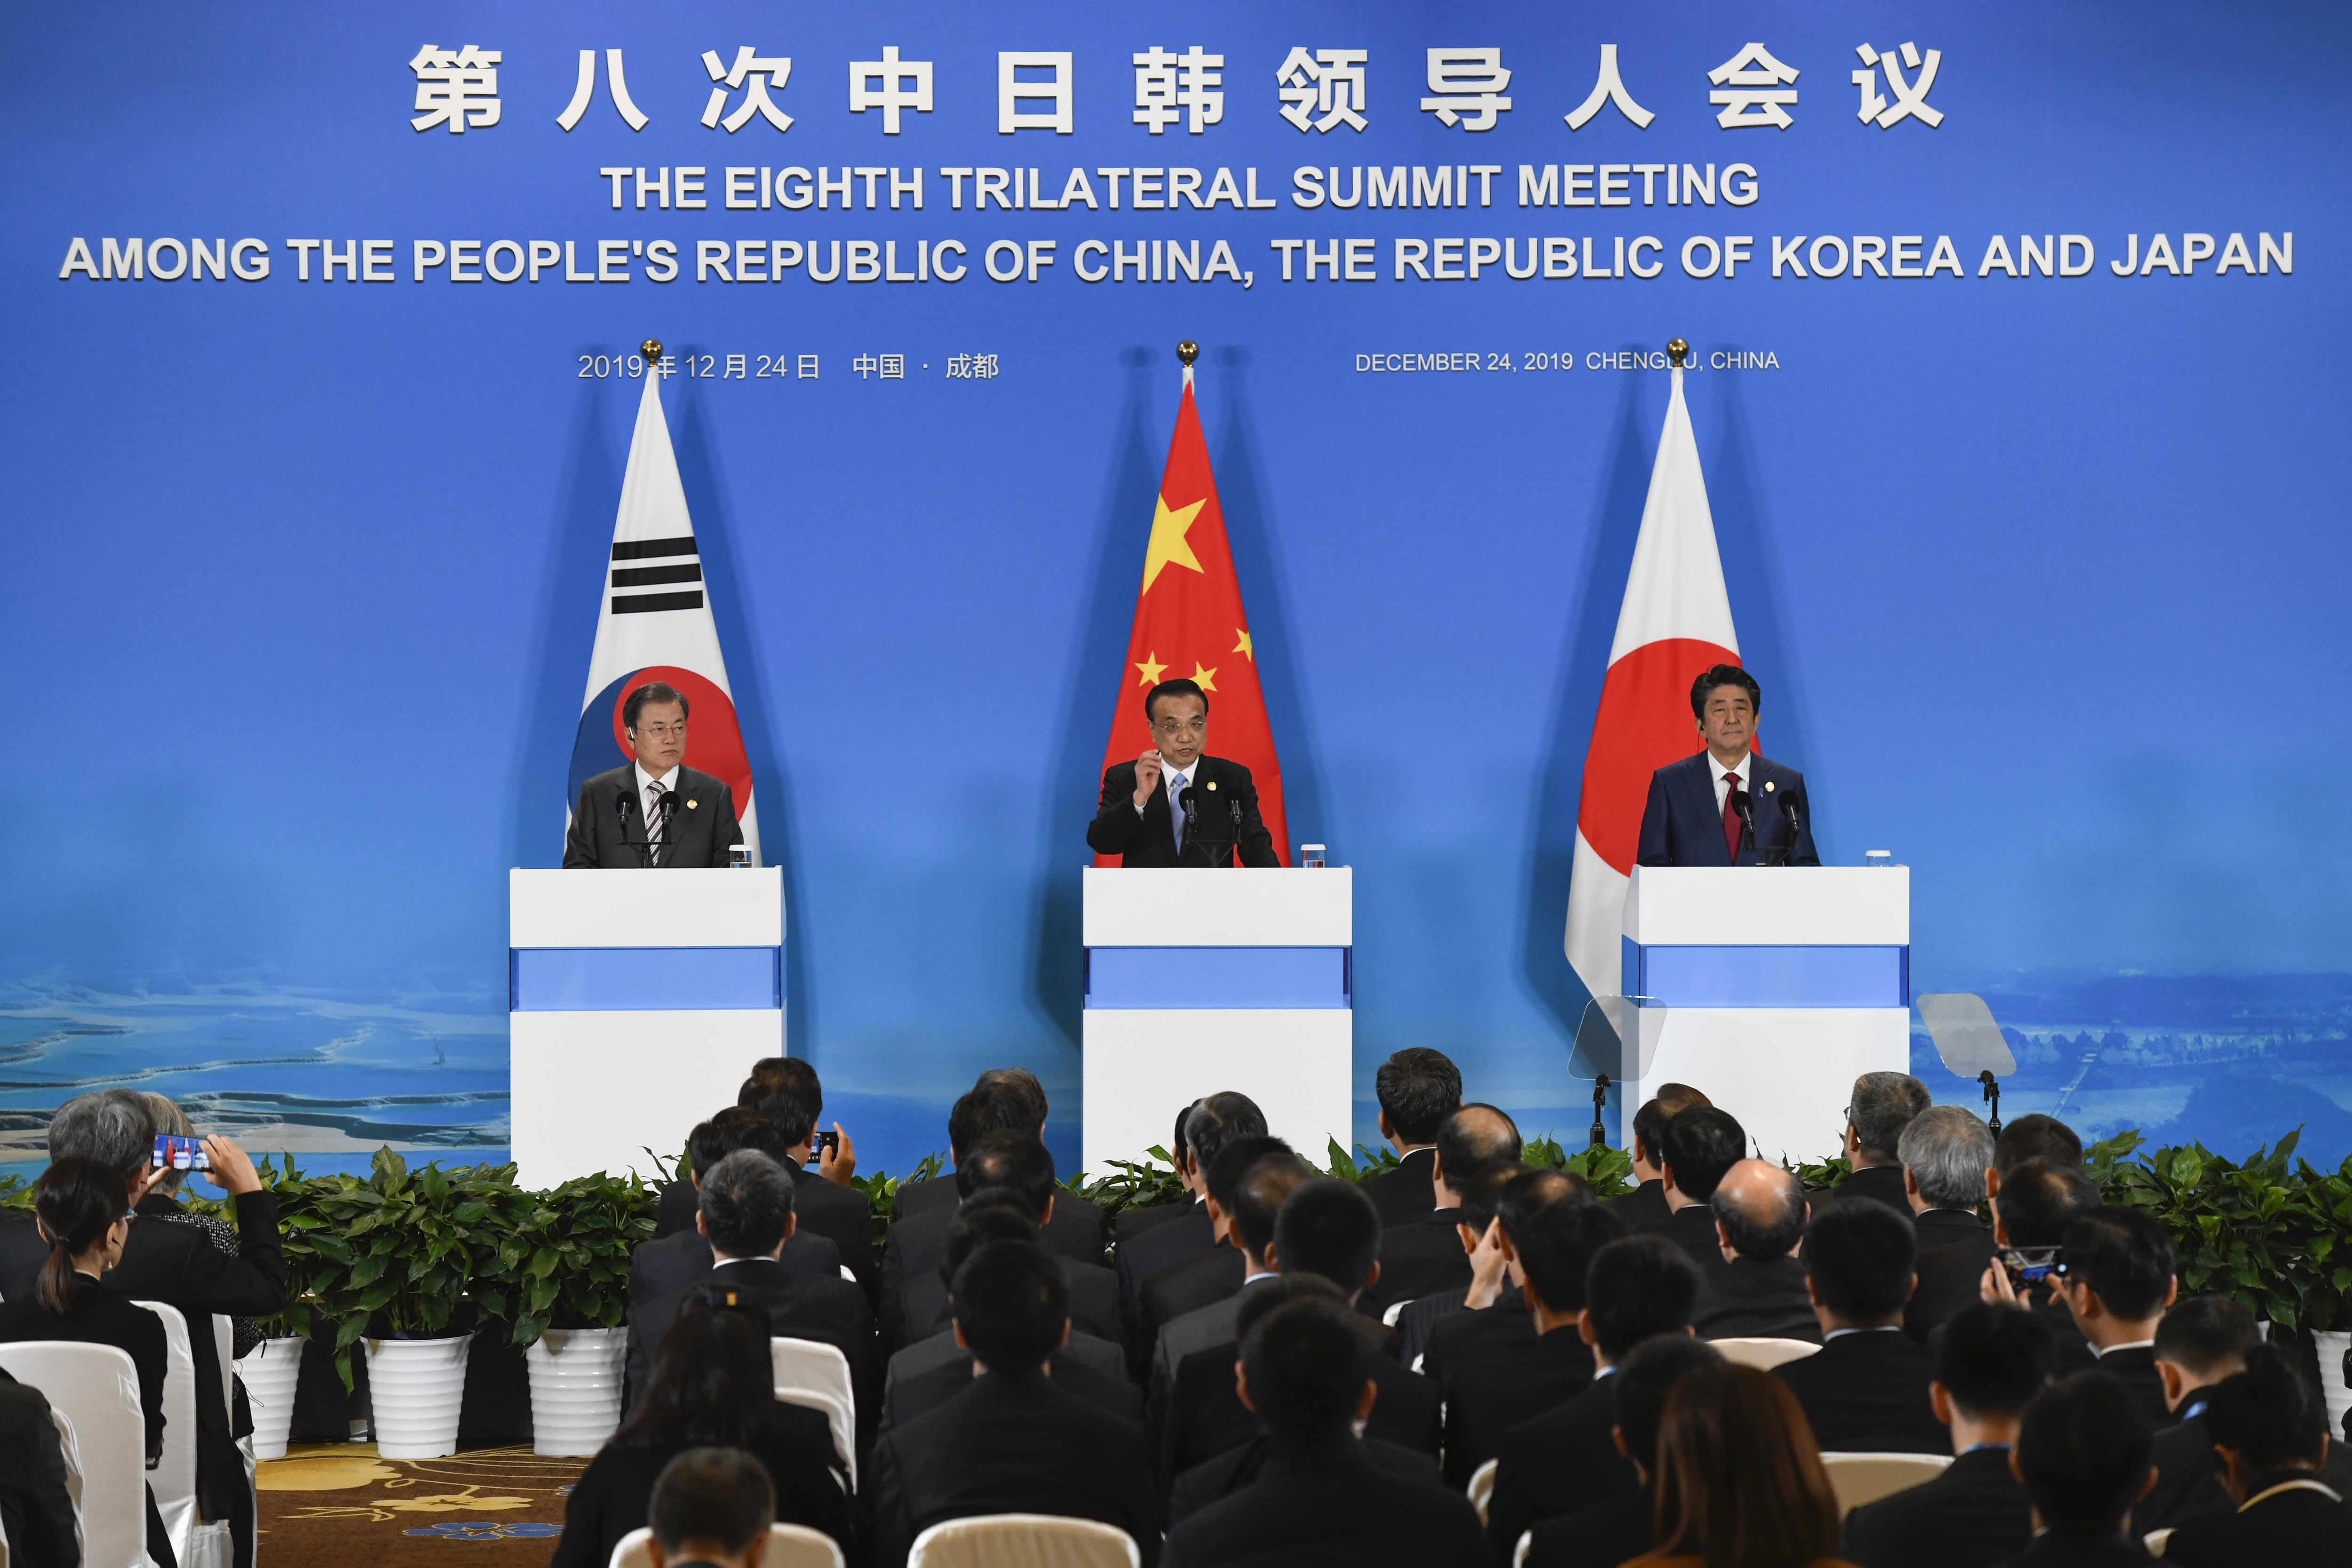 South Korea, Japan and China to work together to promote dialogue between North Korea and the US